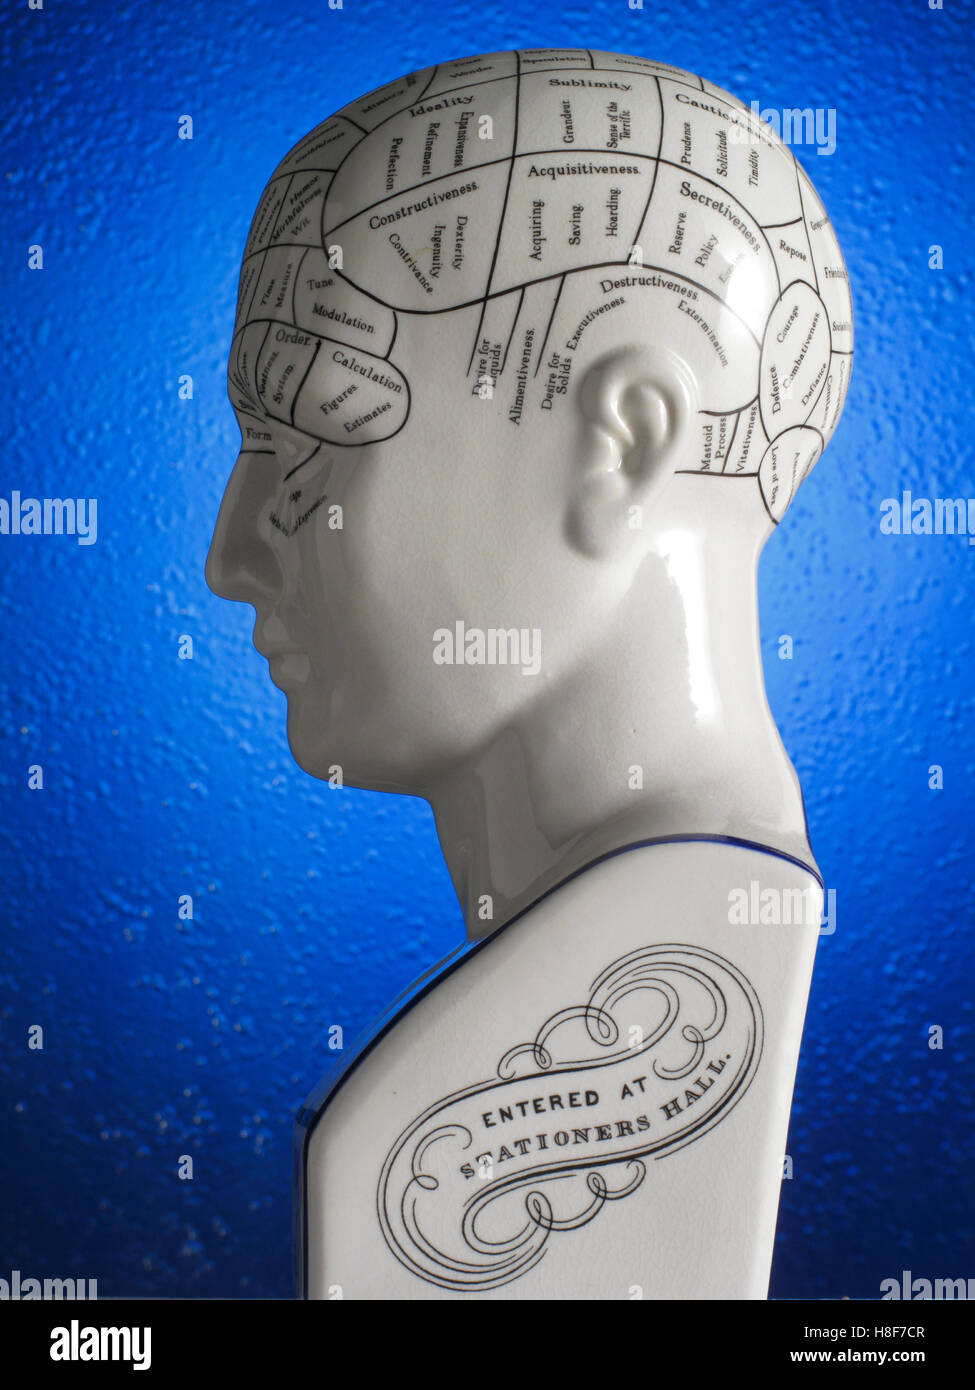 Anatomical model of the head, labelled, brain functions - Stock Image